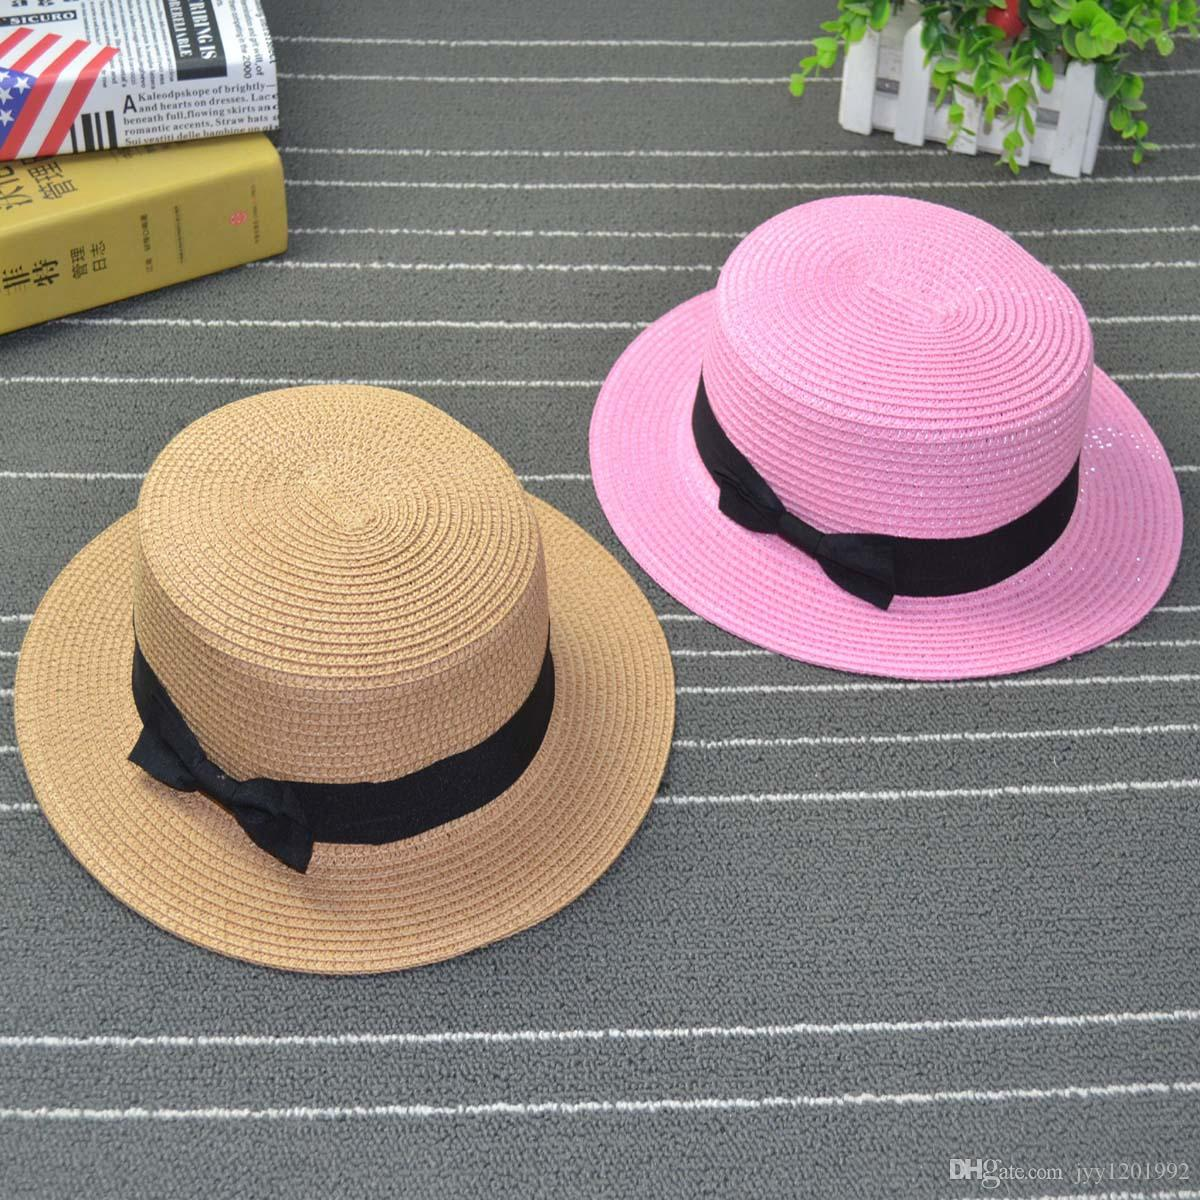 cb4ea5d93d67a Fashion Parent Child Sun Hat Cute Children Sun Hats Bow Hand Made Women  Straw Cap Beach Big Brim Hat Casual Glris Summer Cap Fishing Hats Funny Hats  From ...